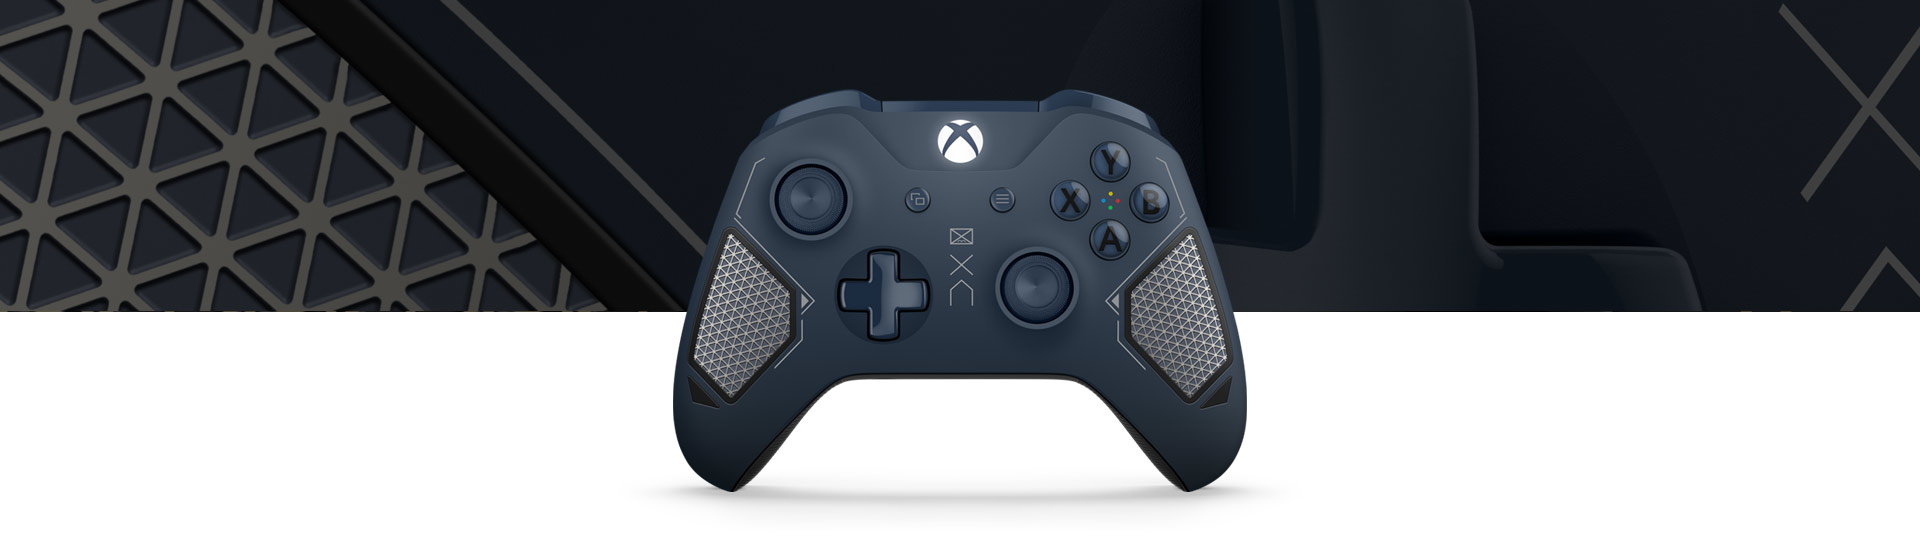 Xbox Wireless Controller – Patrol Tech Special Edition